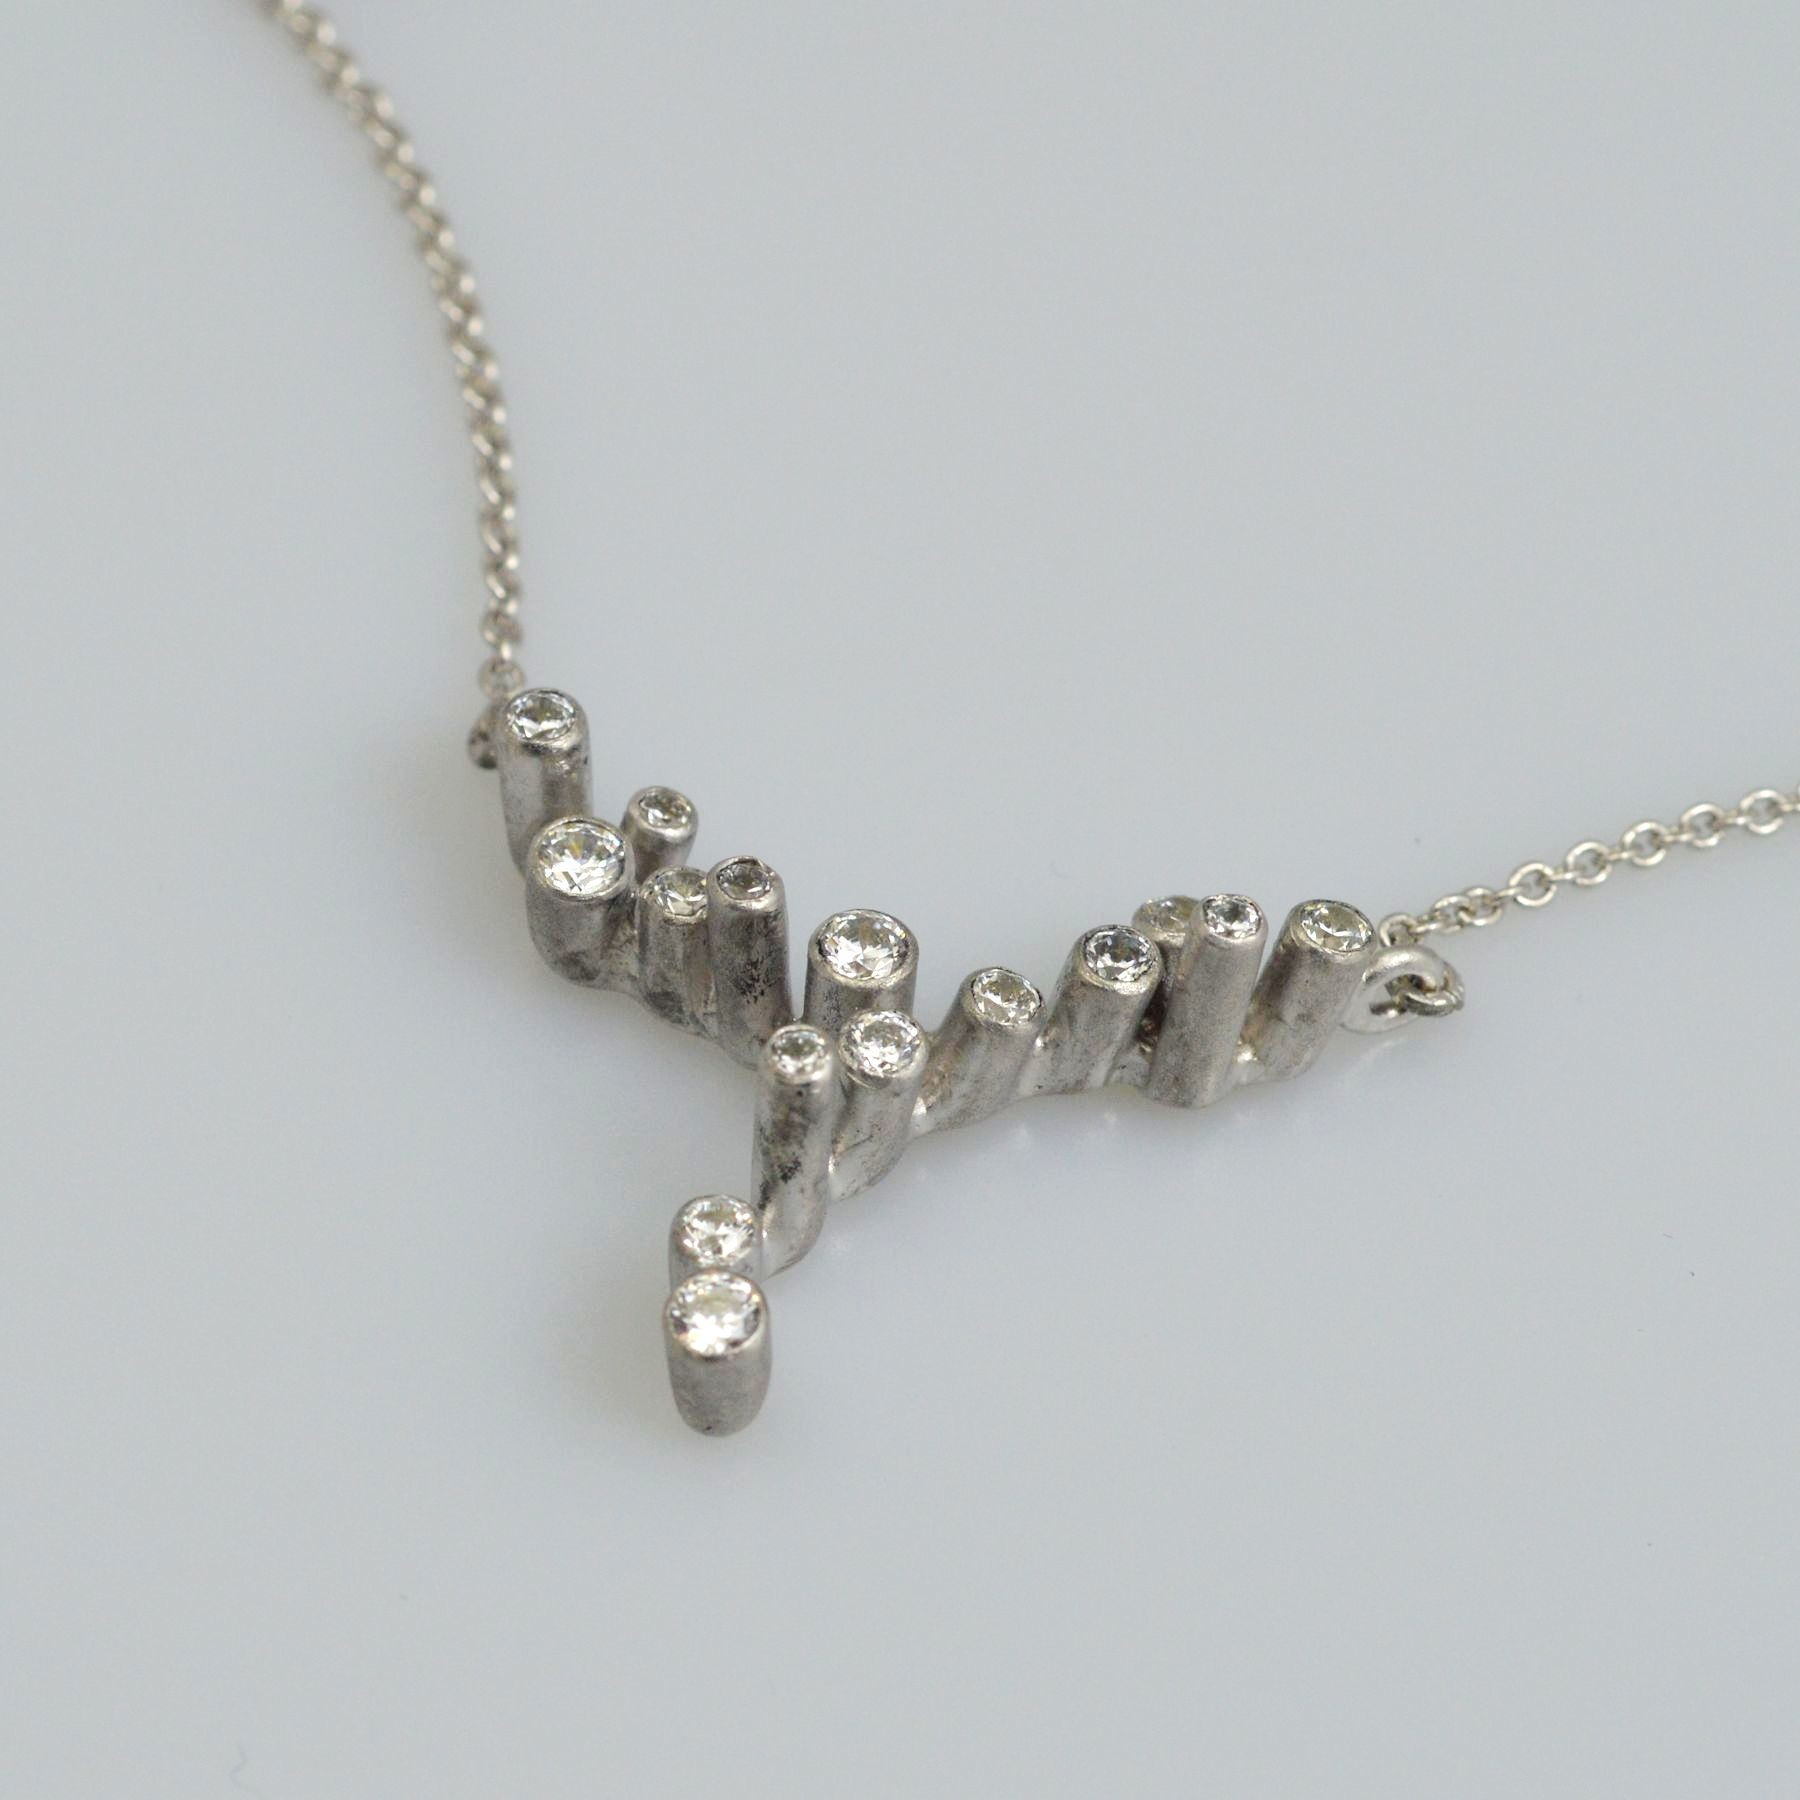 Silver necklace 925 rhodium plated with synthetic stones